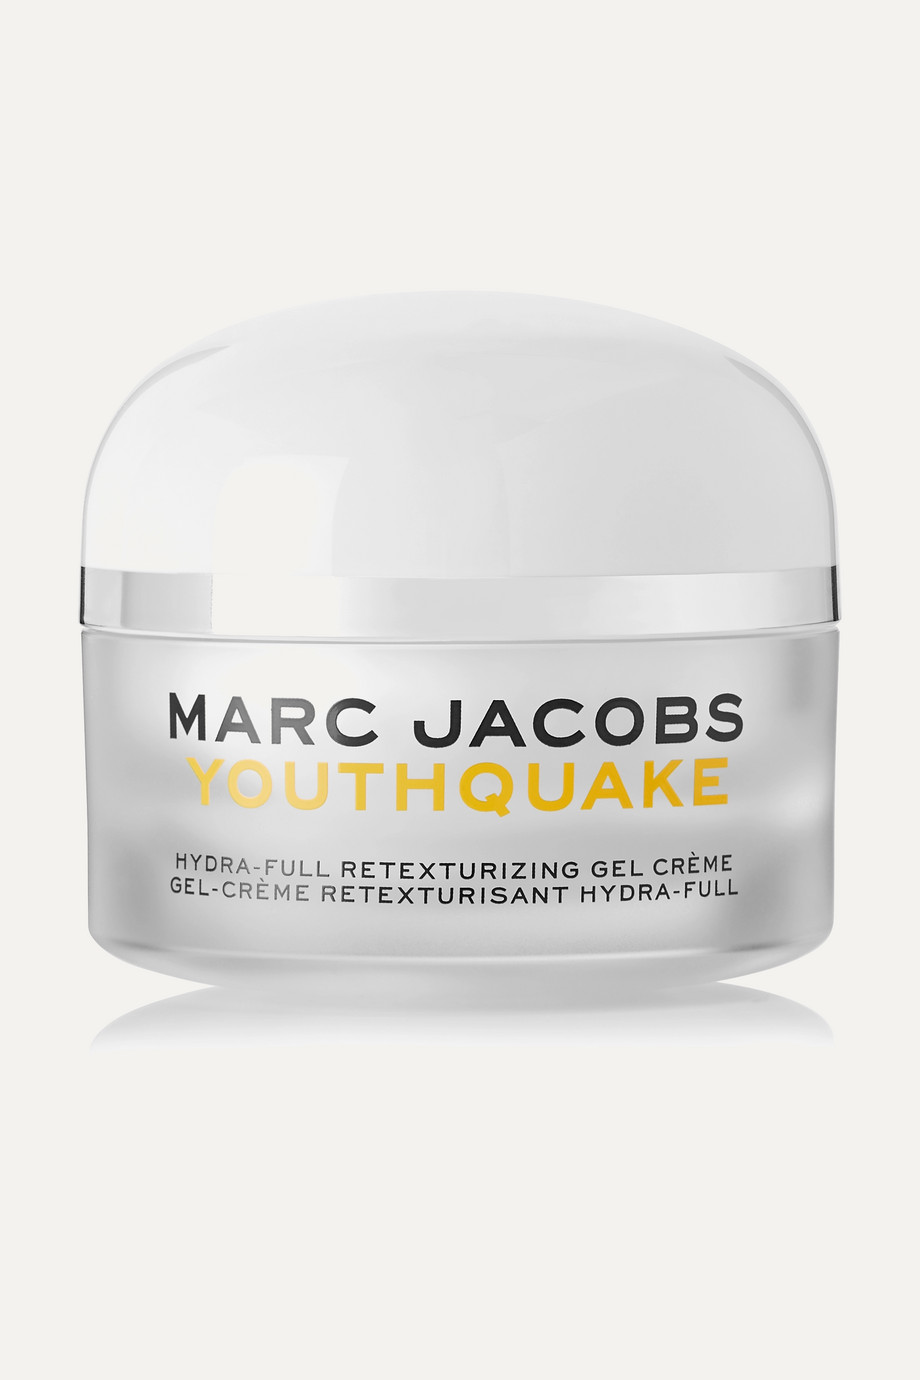 Marc Jacobs Beauty Youthquake Hydra-Full Retexturizing Gel Crème, 50ml